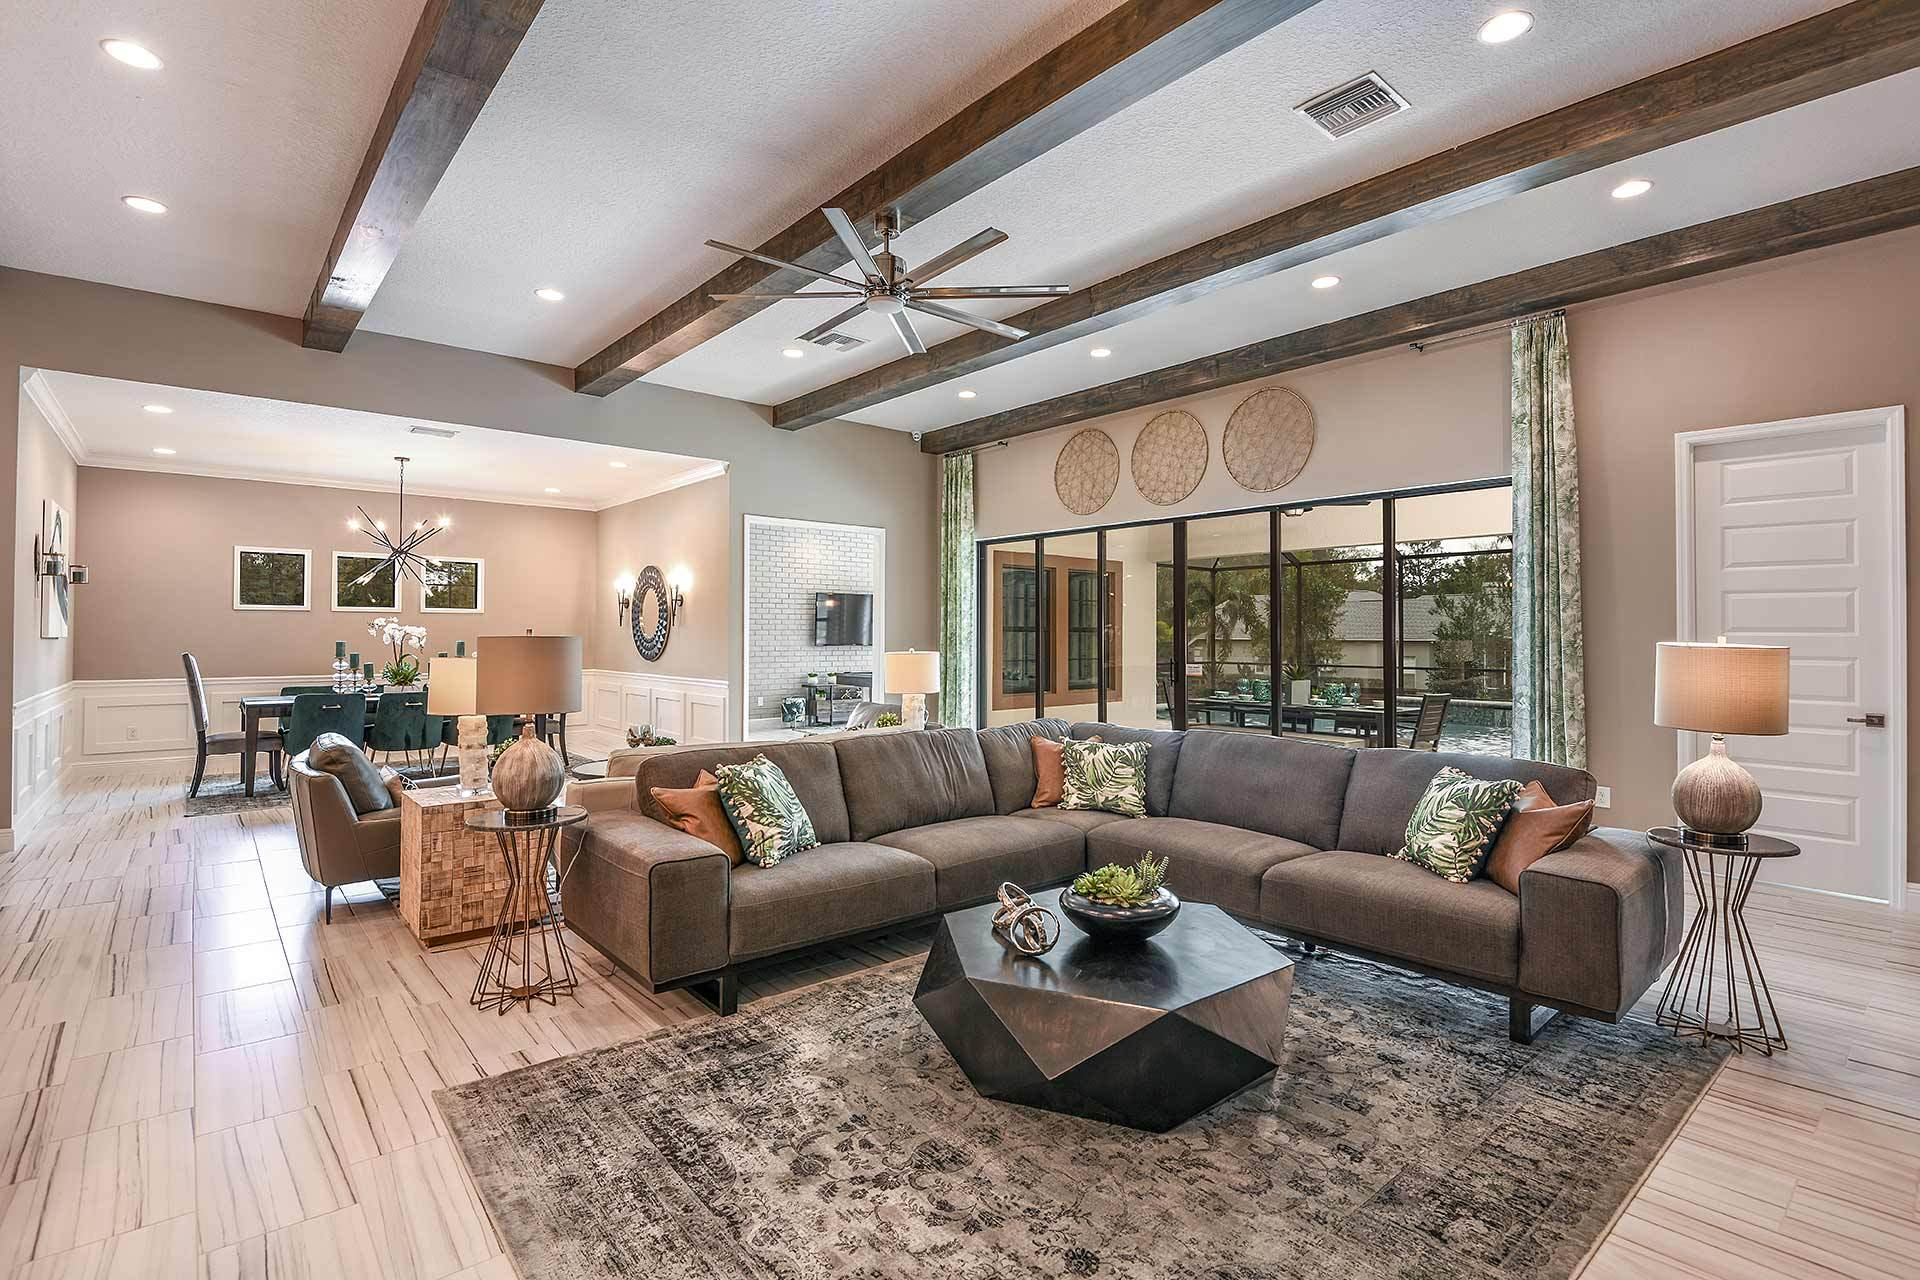 Living Area featured in the Key West By Homes by WestBay in Tampa-St. Petersburg, FL